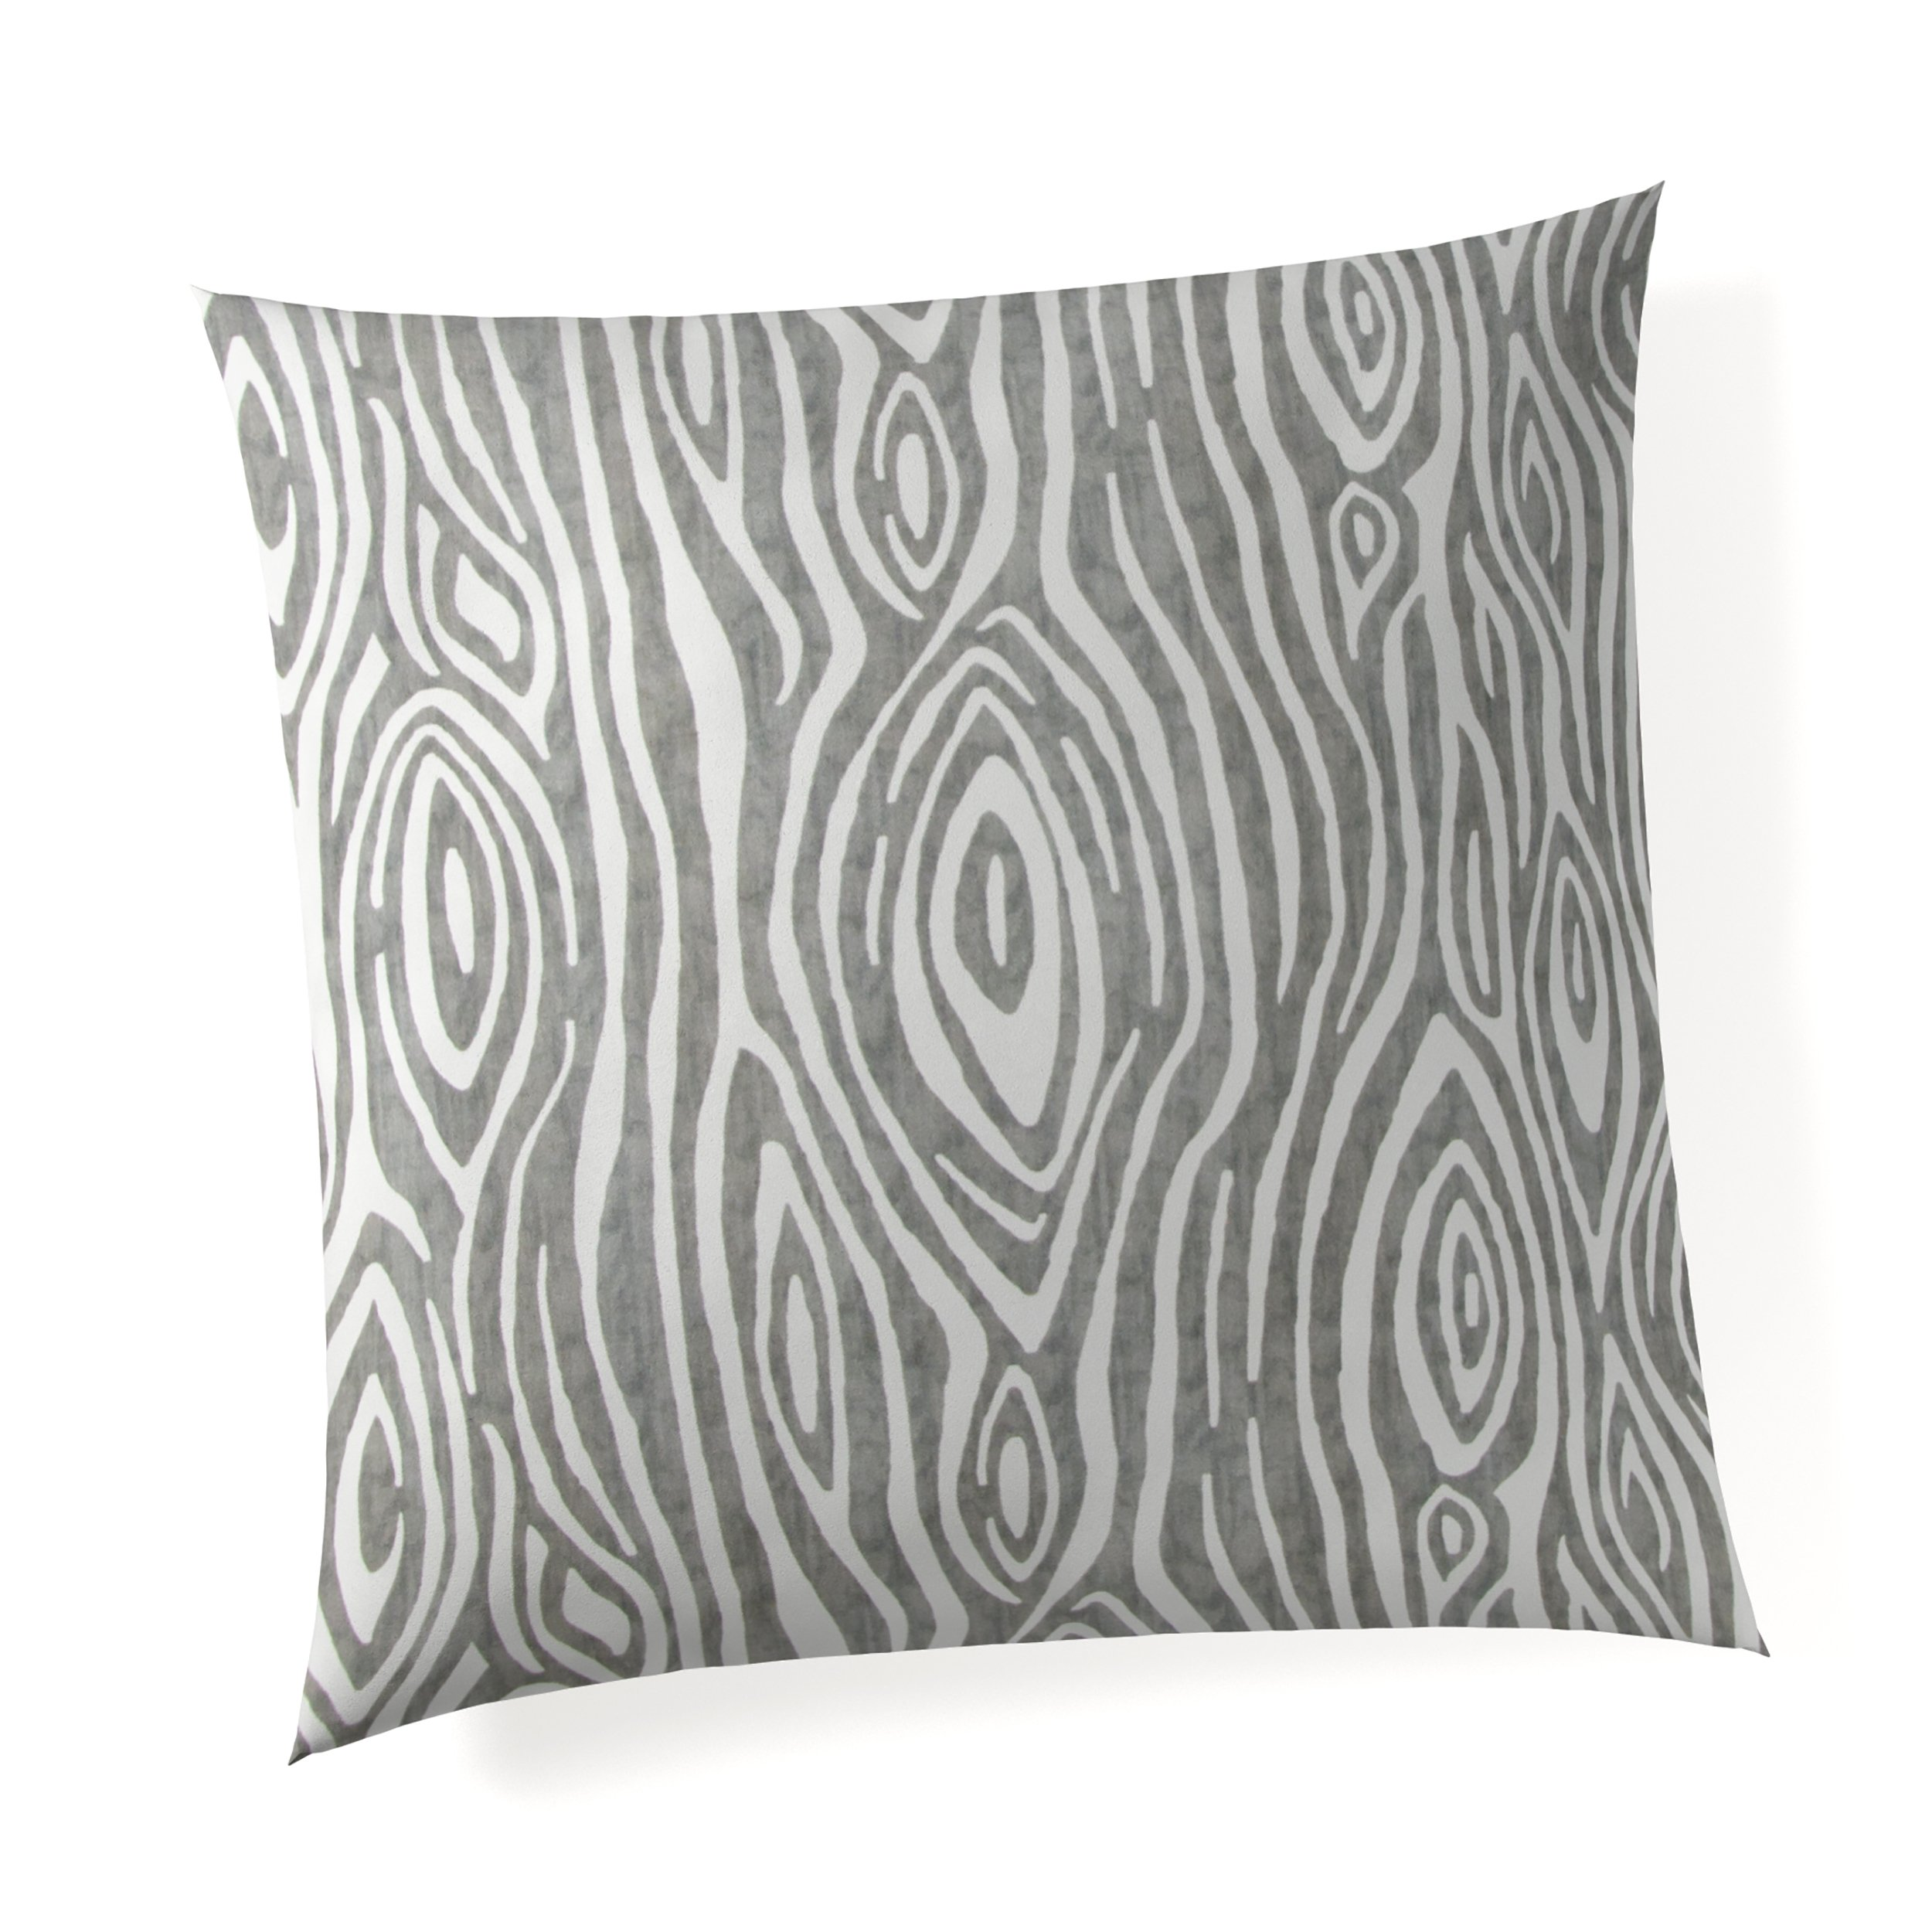 Glenna Jean Tree Trunk 18''x 18'' Pillow with Fill for Baby Nursery, Decorative Soft Cushion Square